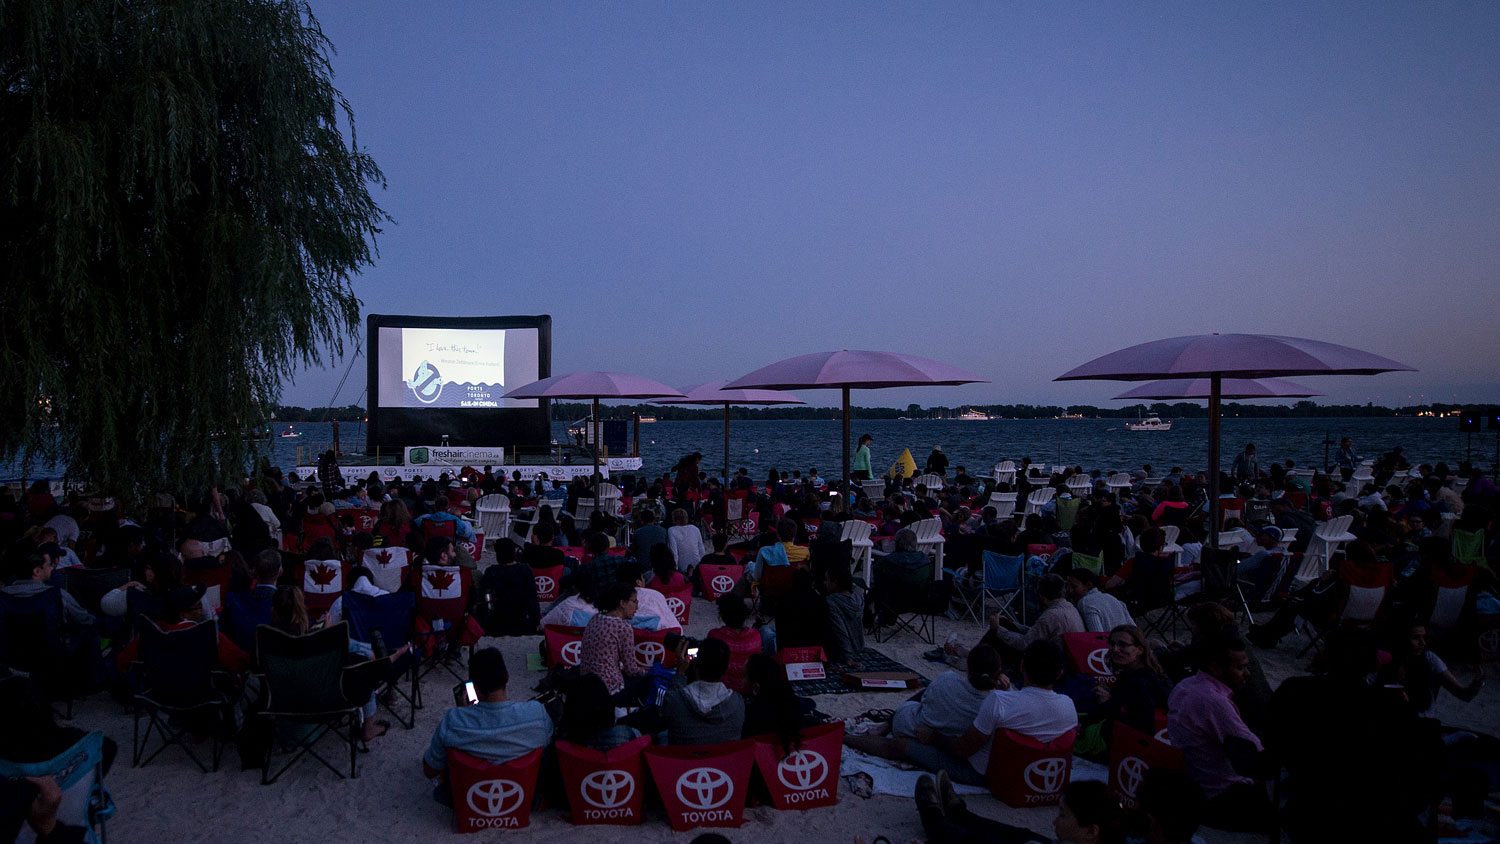 People gather at Sugar Beach to watch movies at the Sail-in Cinema in 2015. Photo credit: Ports Toronto